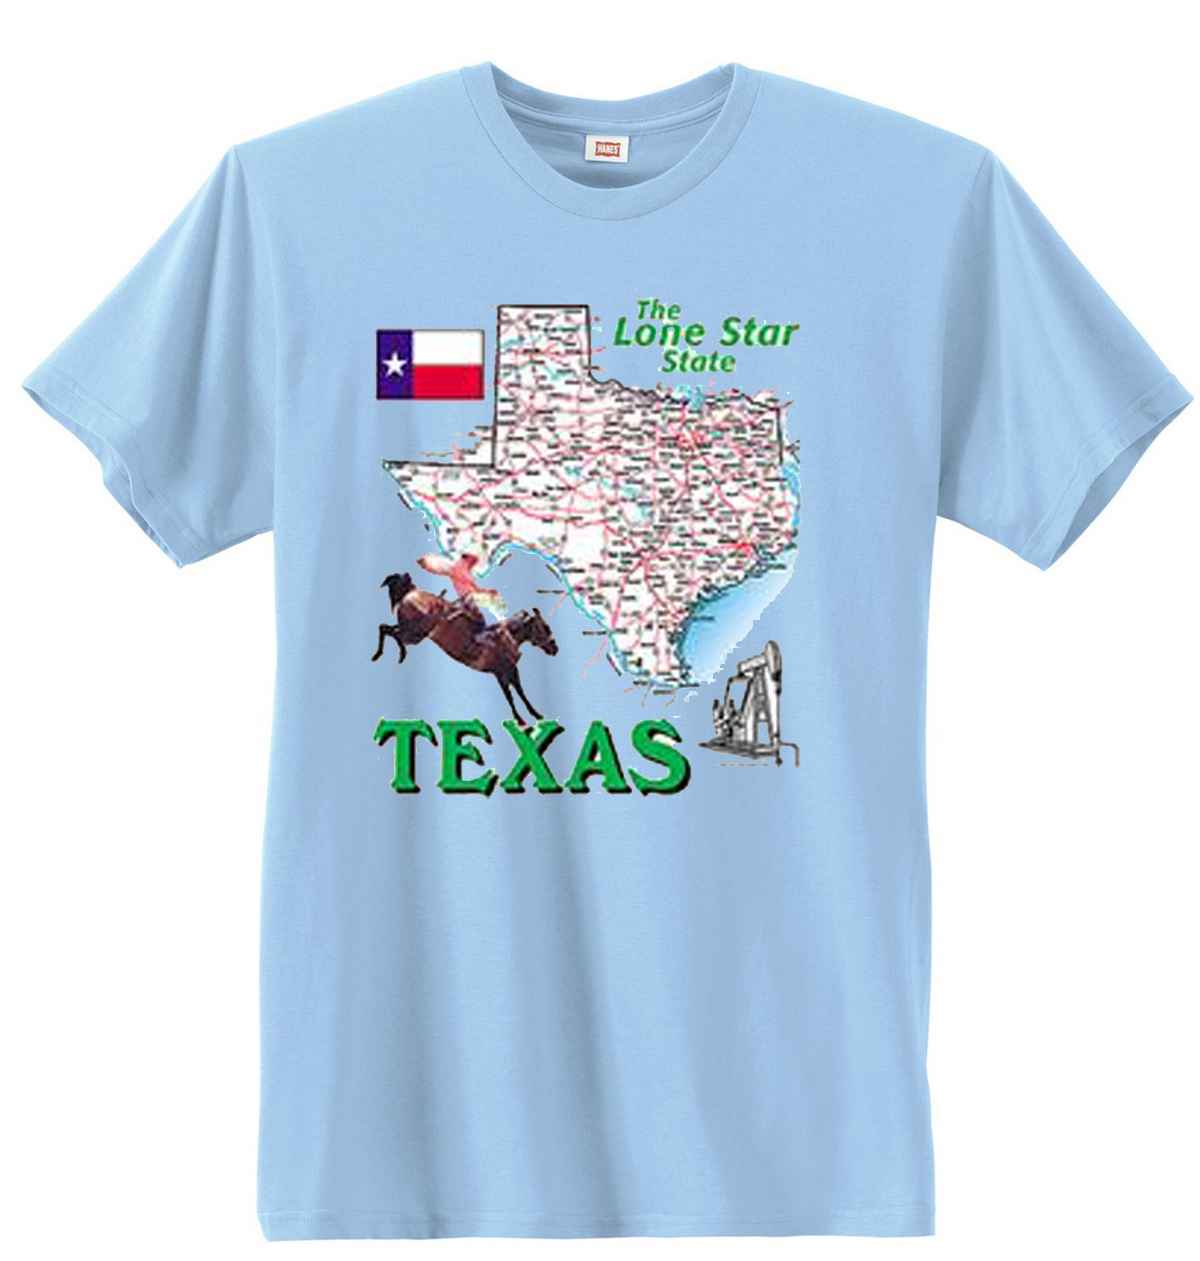 Texas The Lone Star State T-Shirt